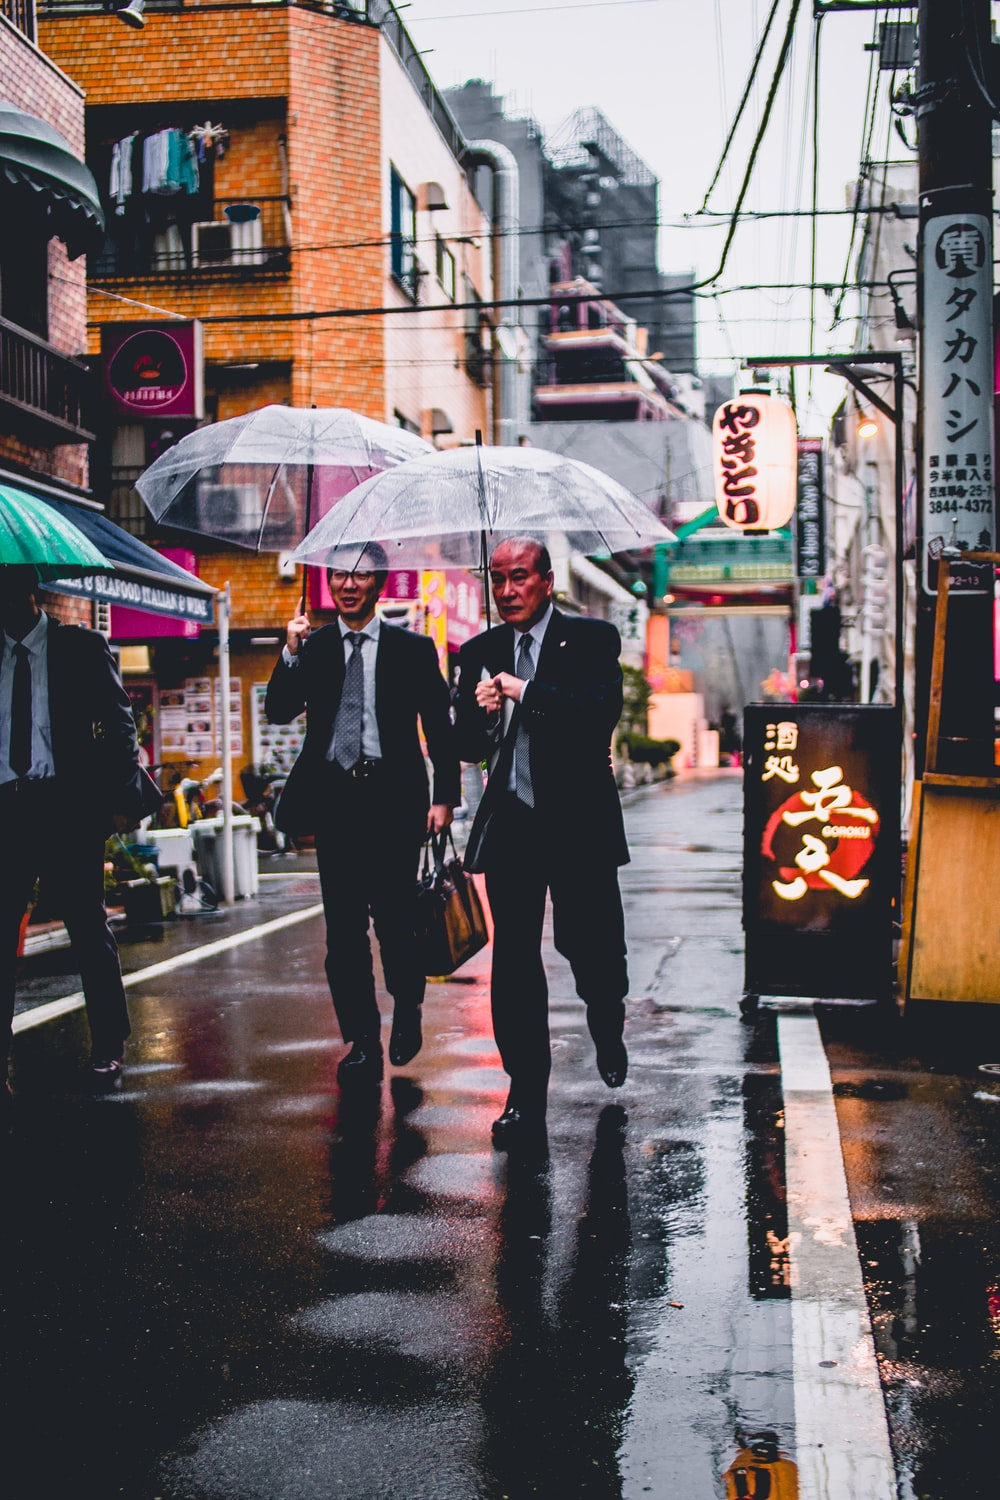 two men in black suit holding transparent umbrellas walking in the street